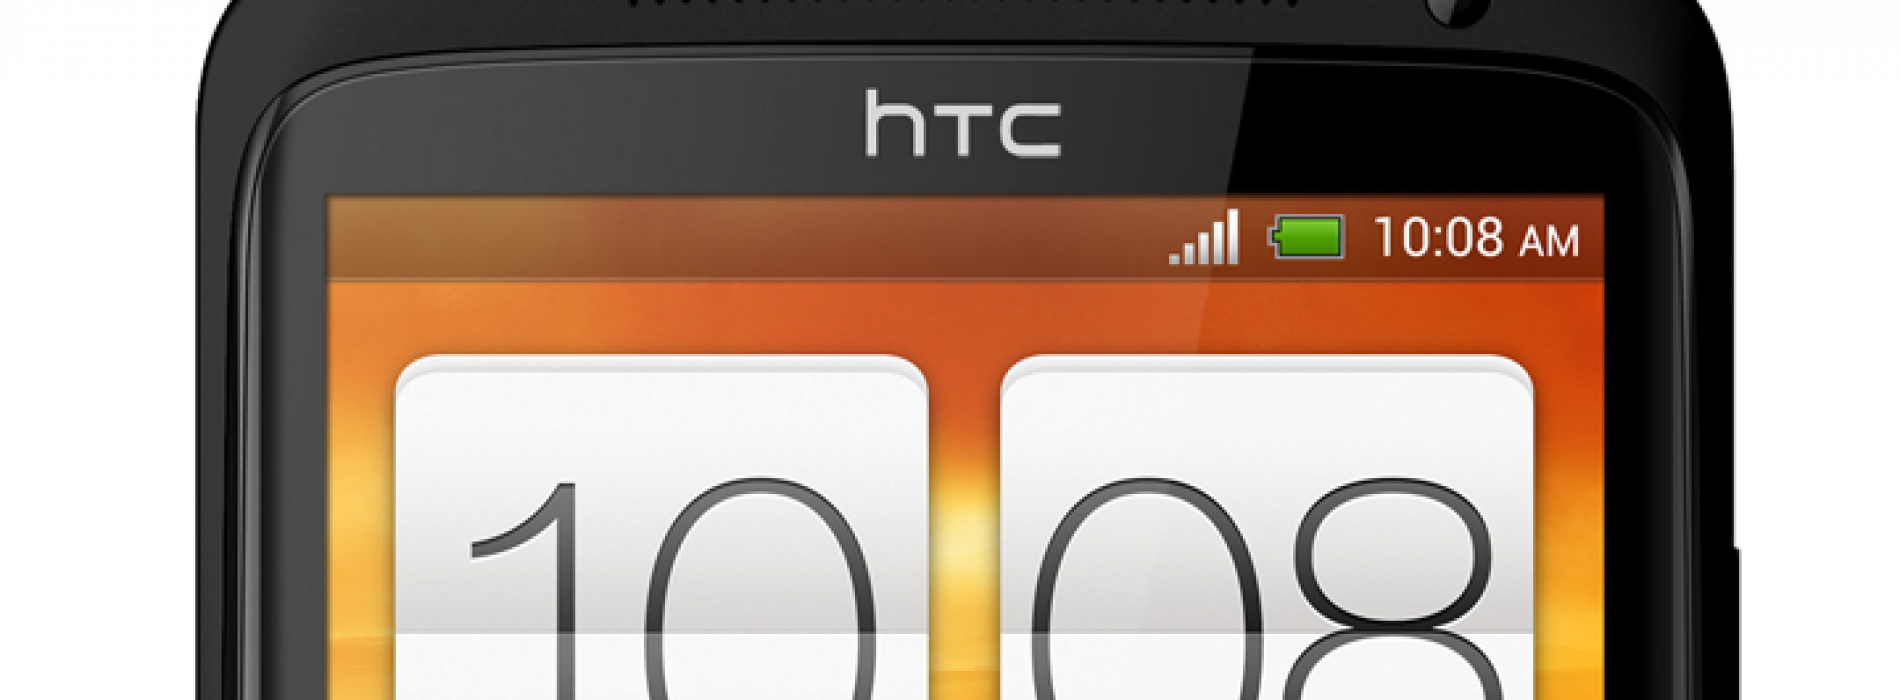 HTC One X+ announced for October